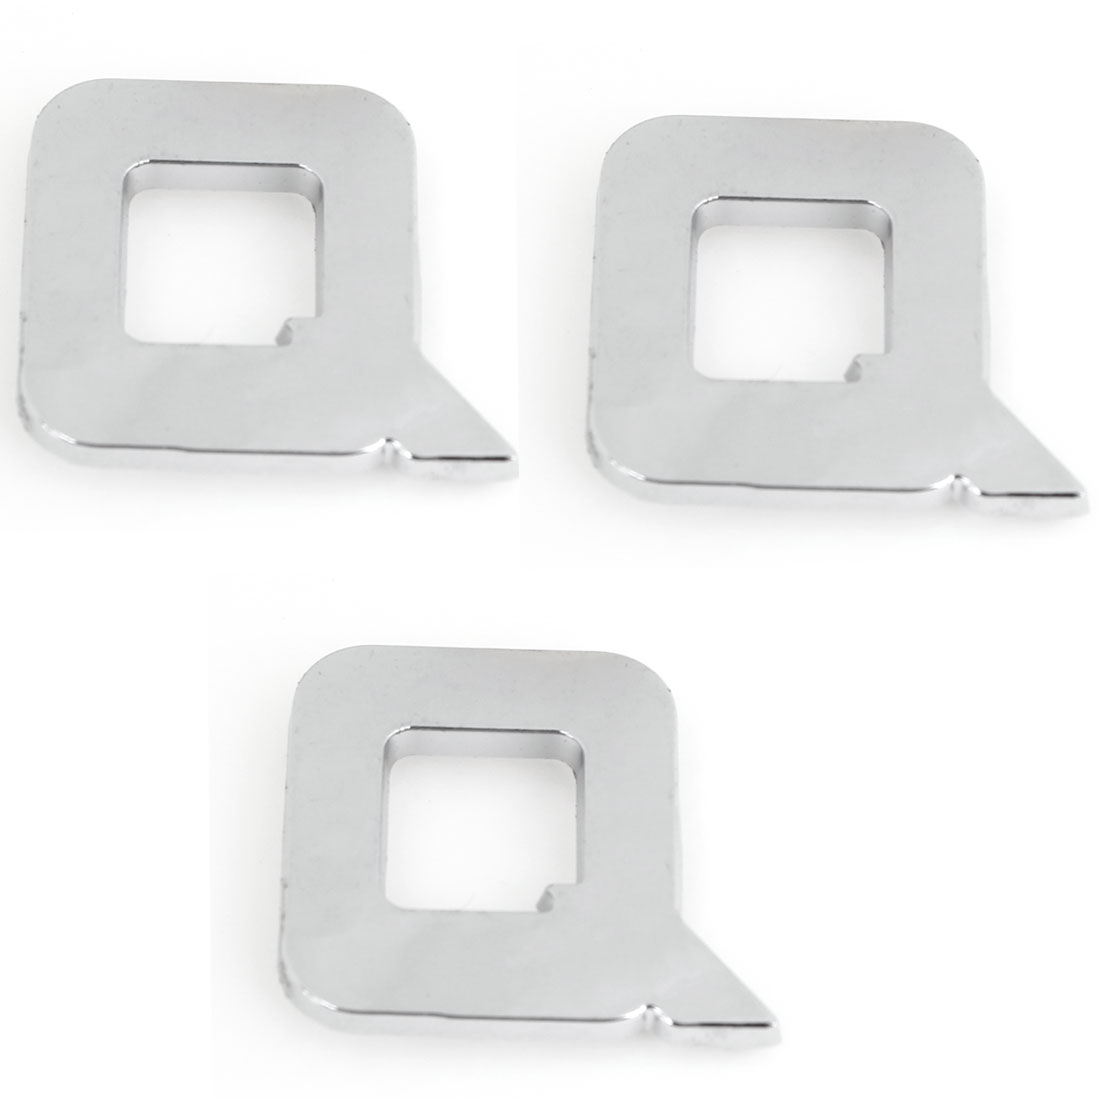 3PCS Self Adhesive Letter Q Shaped Vehicle 3D Emblem Badge Ornament Silver Tone